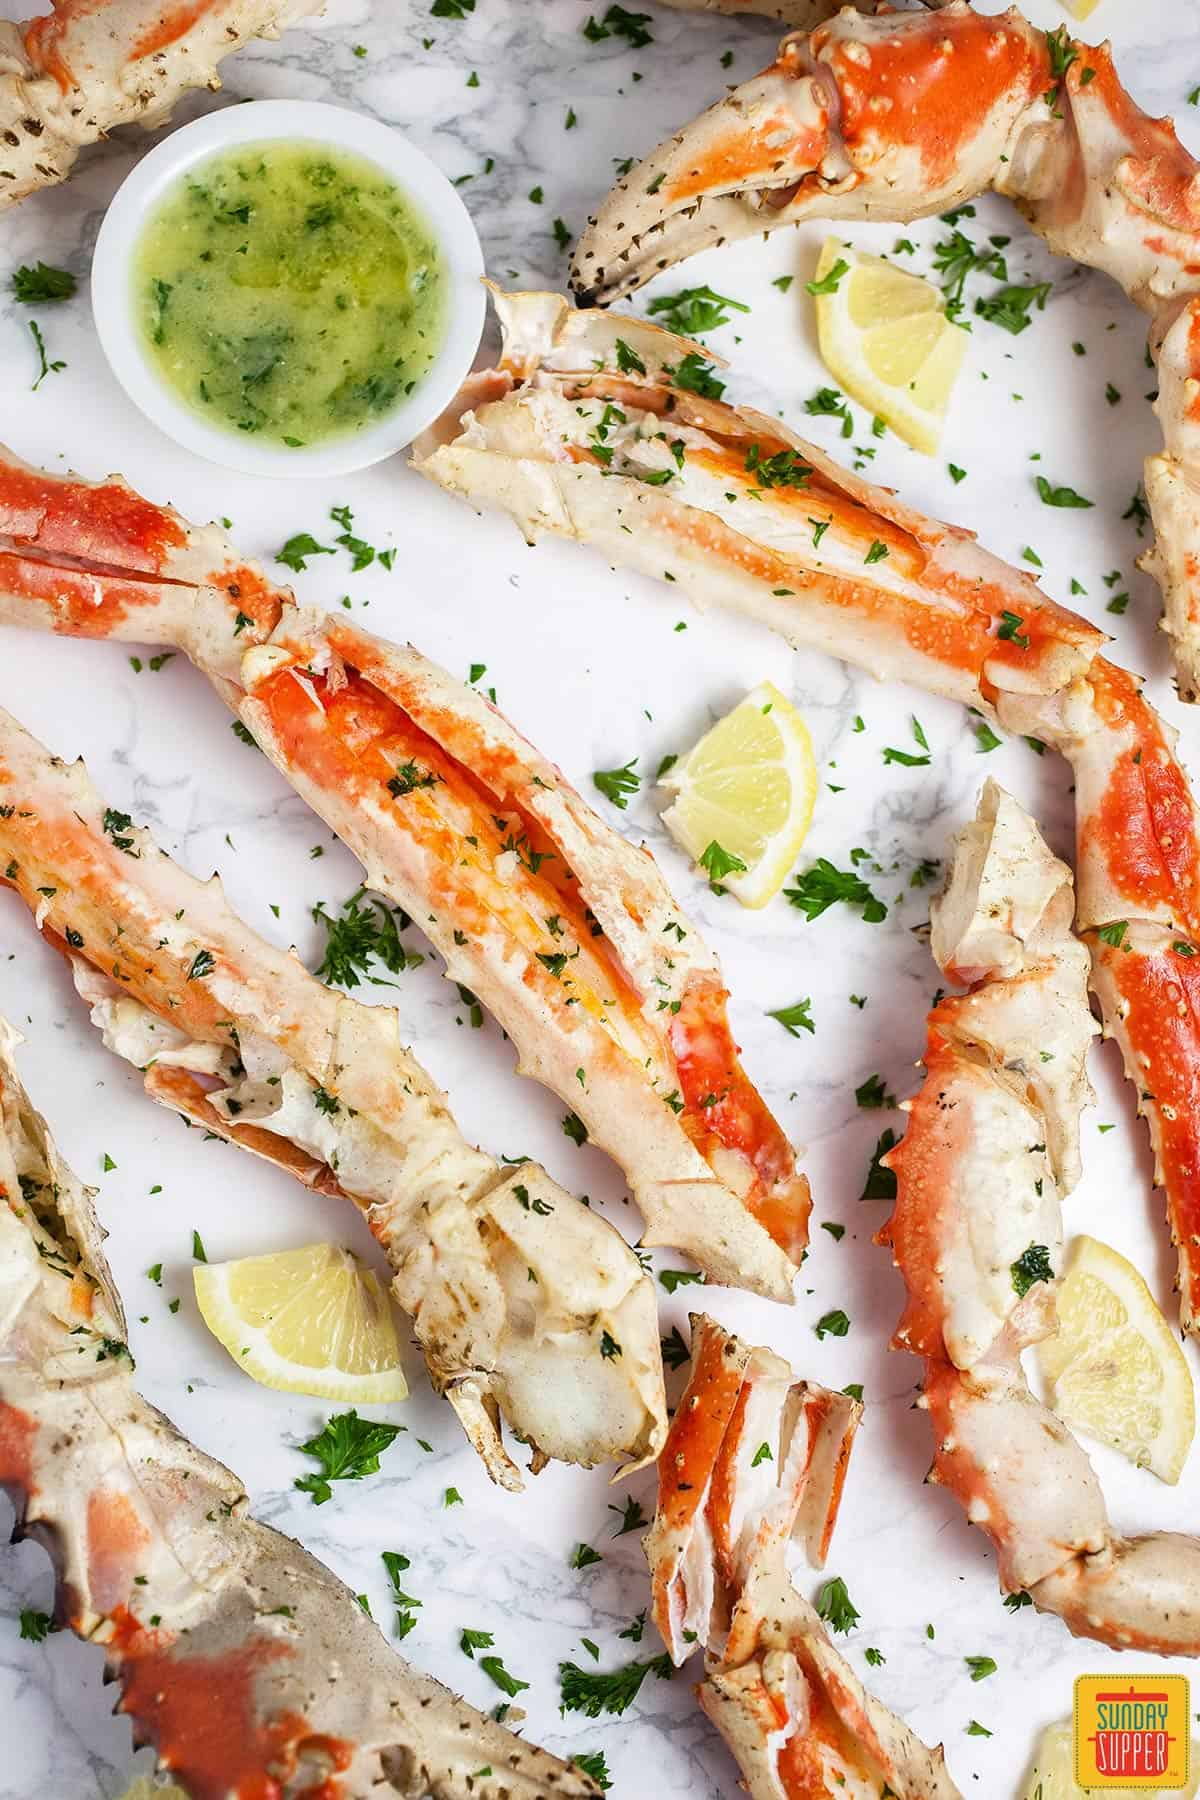 Grilled crab legs on a white surface with a cup of garlic butter sauce and fresh herbs sprinkled on top